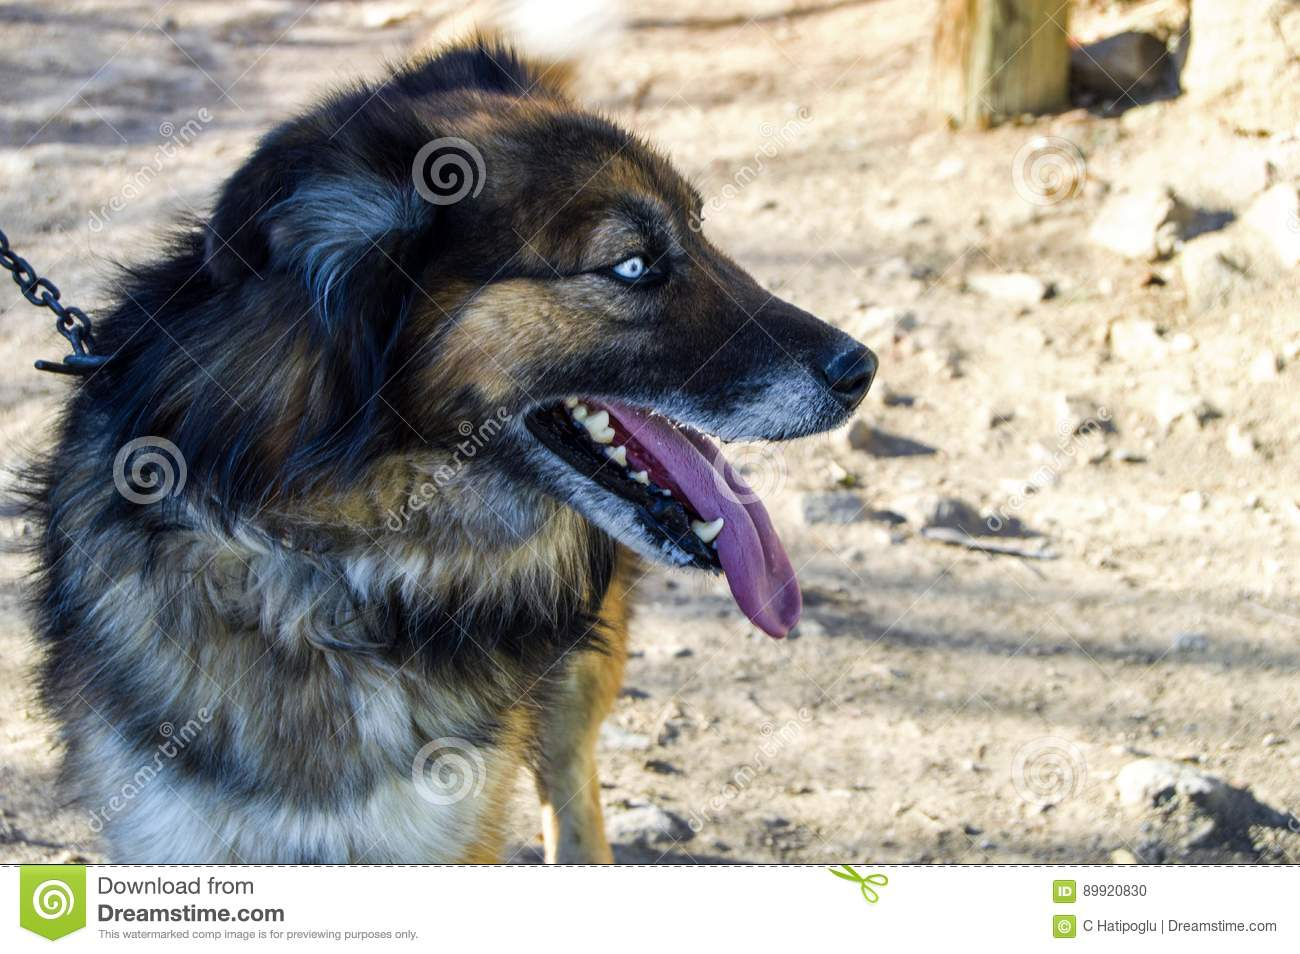 Dogs connected to the chain, pictures of the dogs being shot,